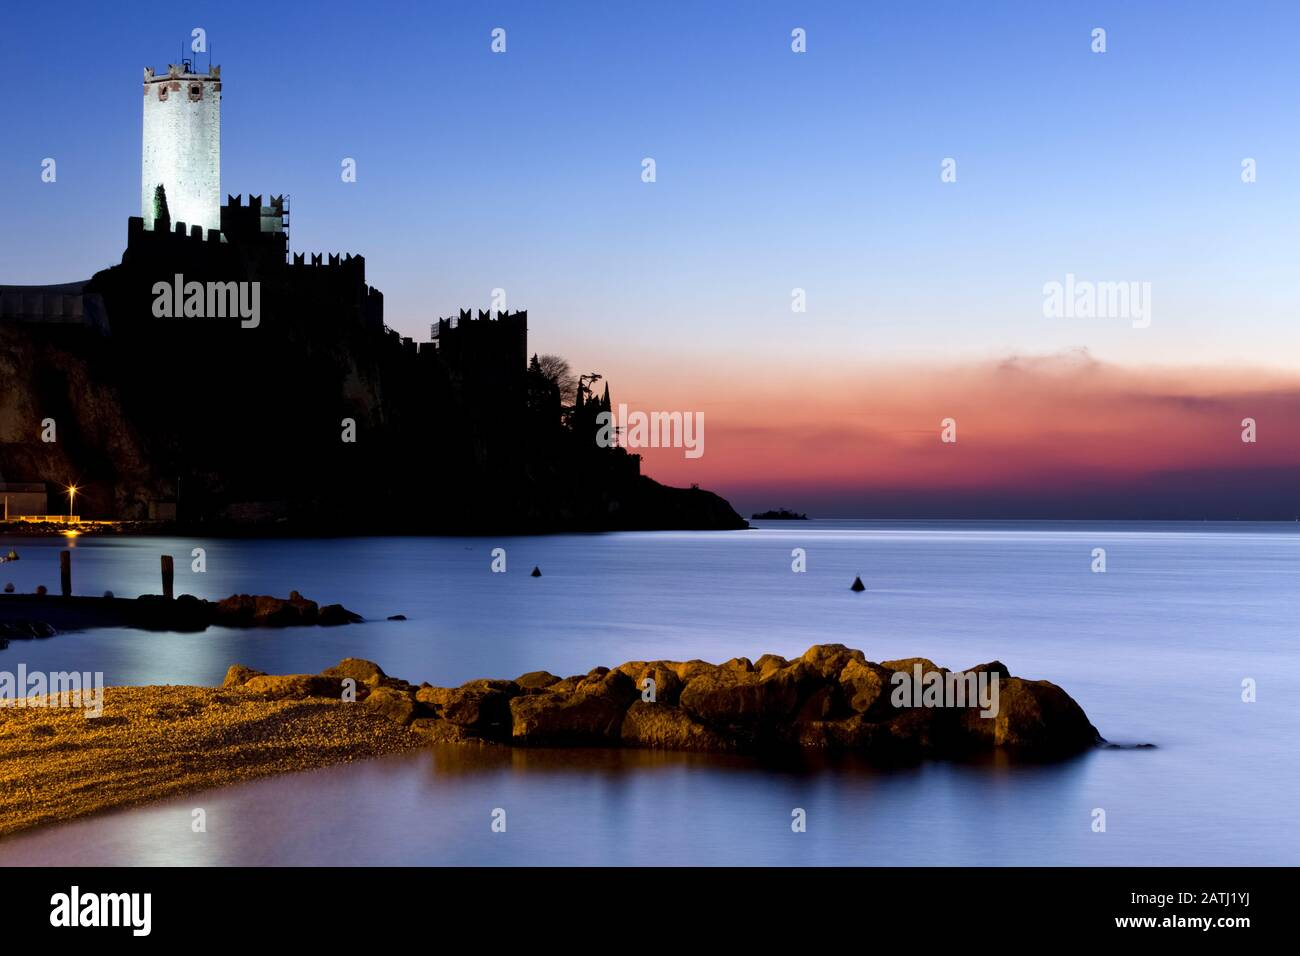 The Scaliger castle of Malcesine was made famous by the drawings and descriptions of the German writer Goethe. Lake Garda, Veneto, Italy. Stock Photo